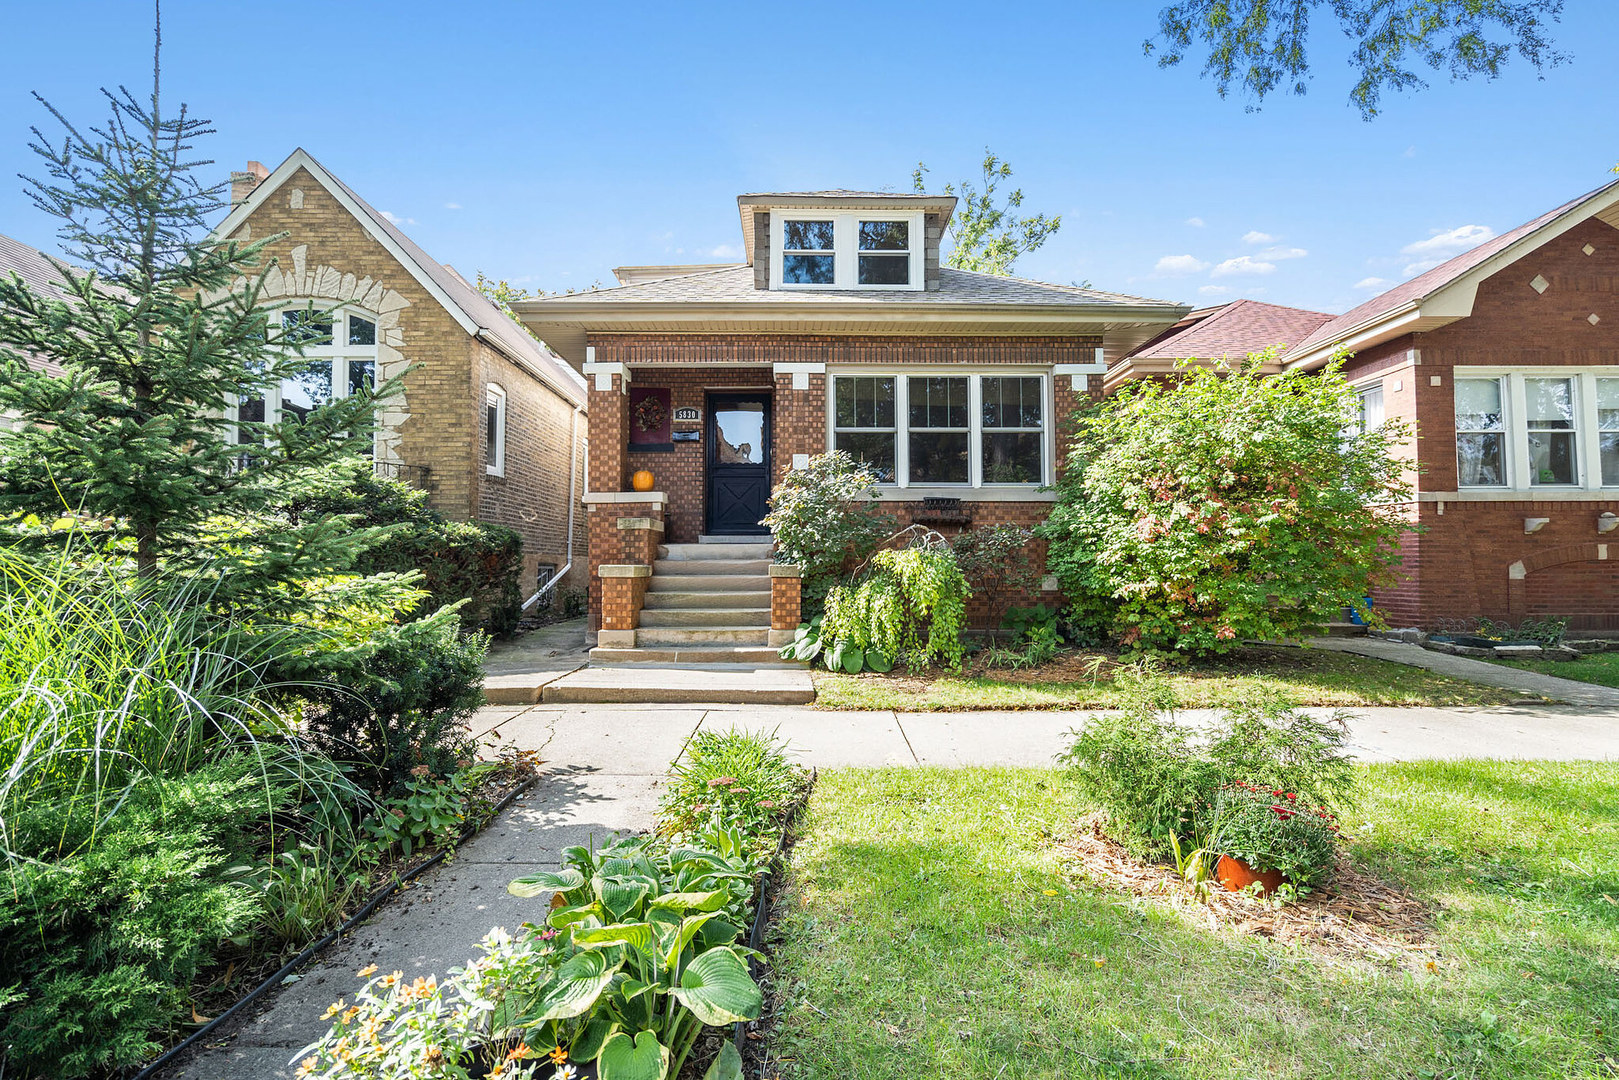 5830 North Washtenaw Avenue, one of homes for sale in North Park Chicago